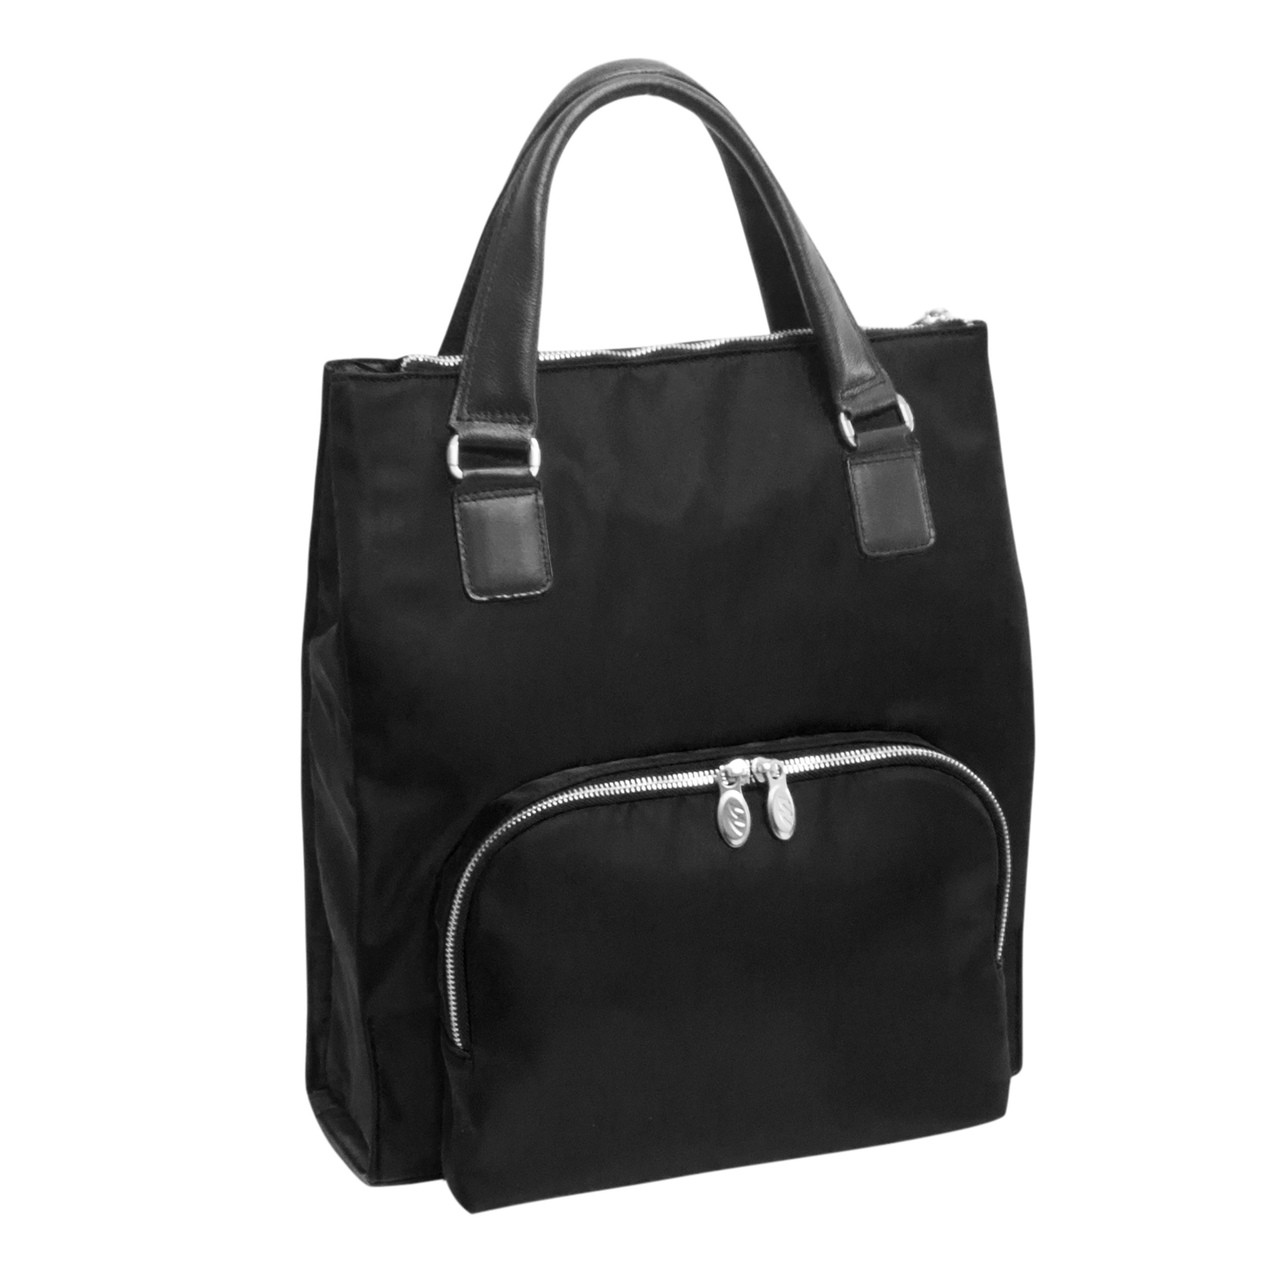 Nylon Convertible Bag